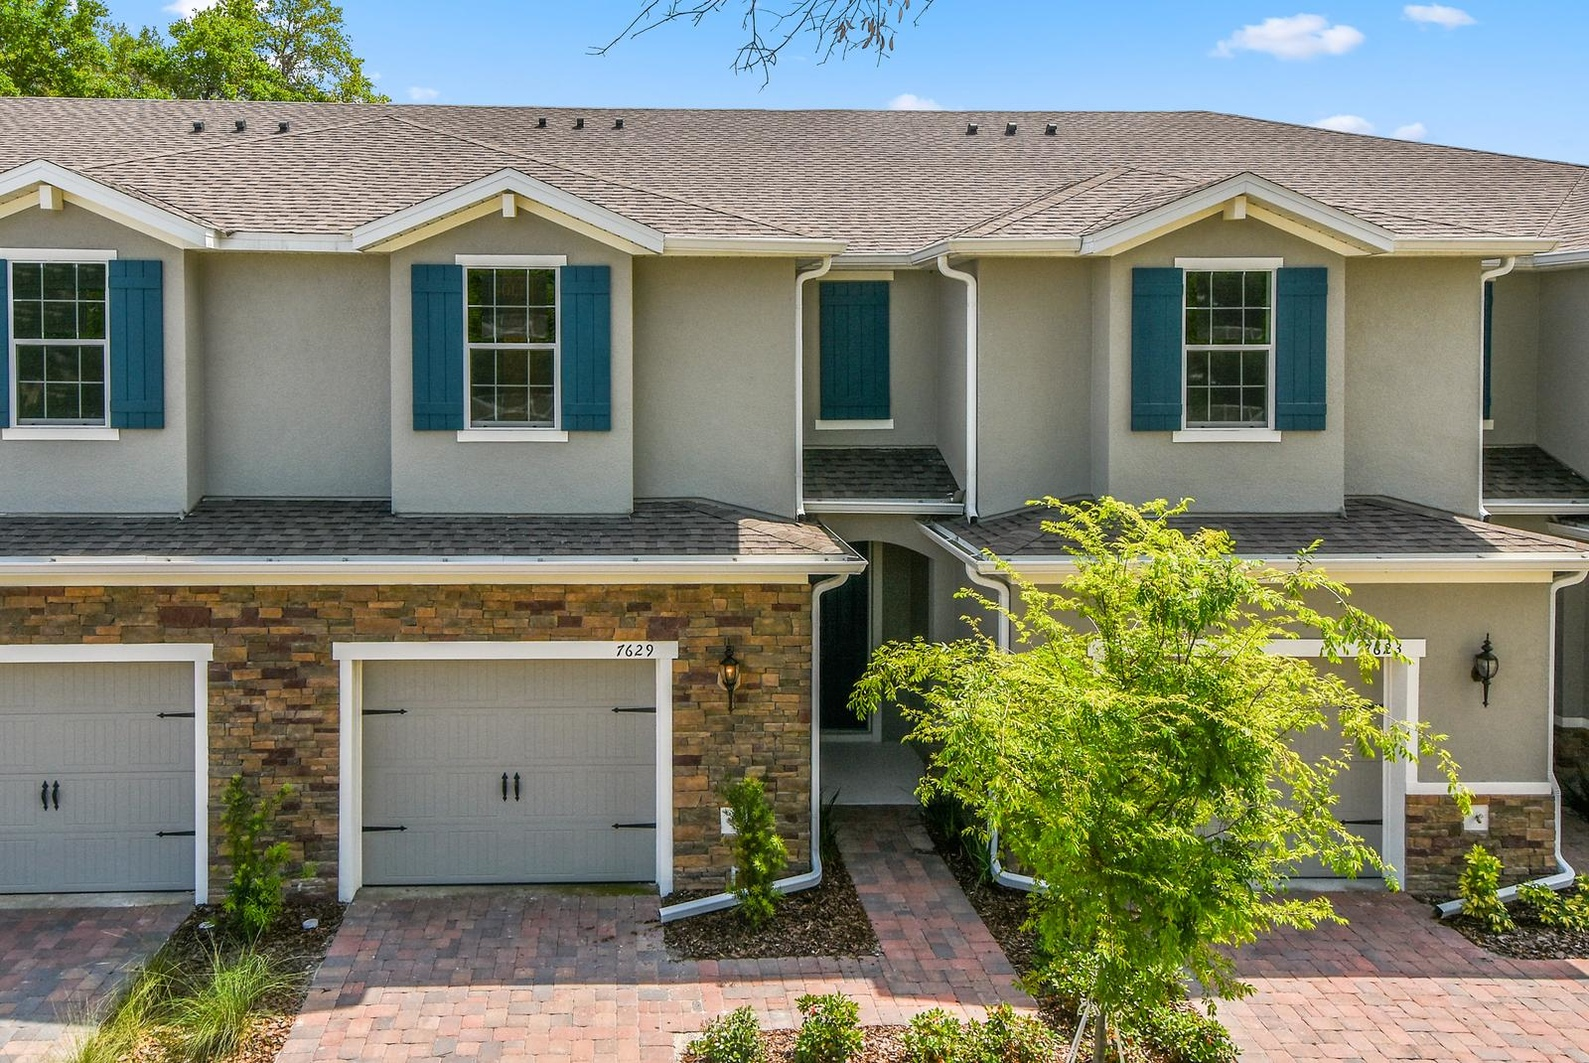 new homes for sale at aloma trails in winter park fl within the